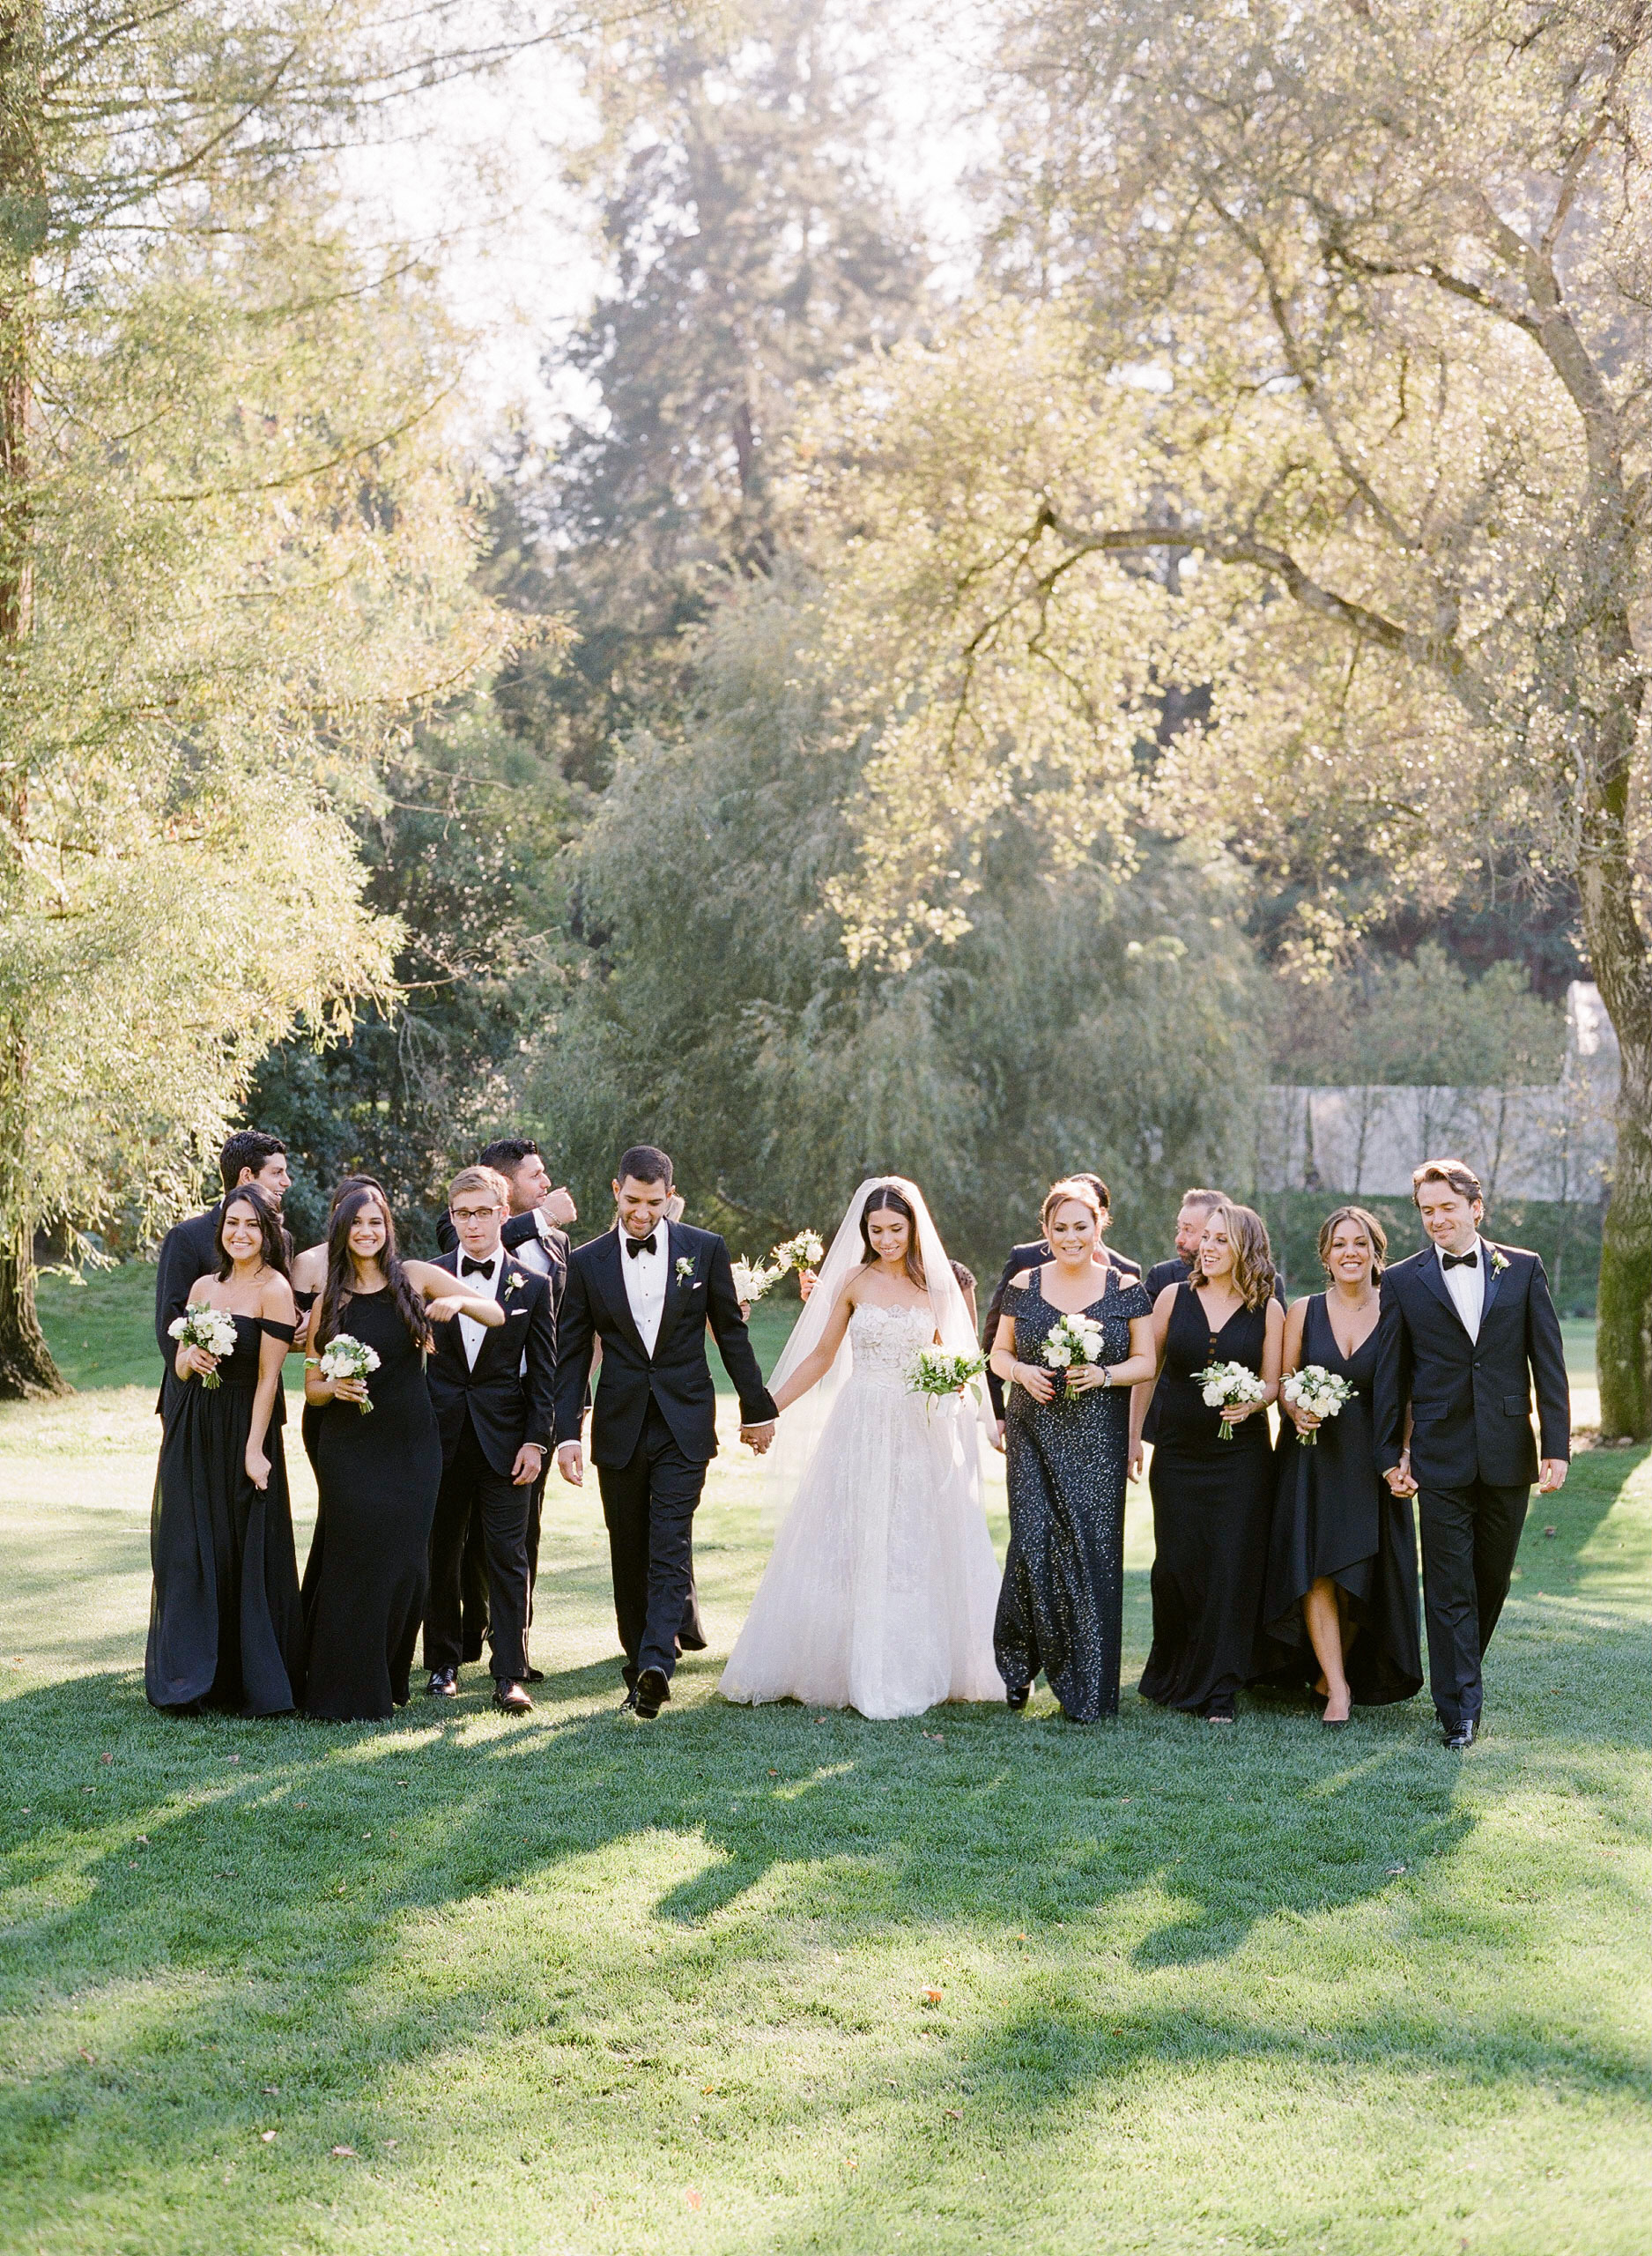 wedding party walking outdoors